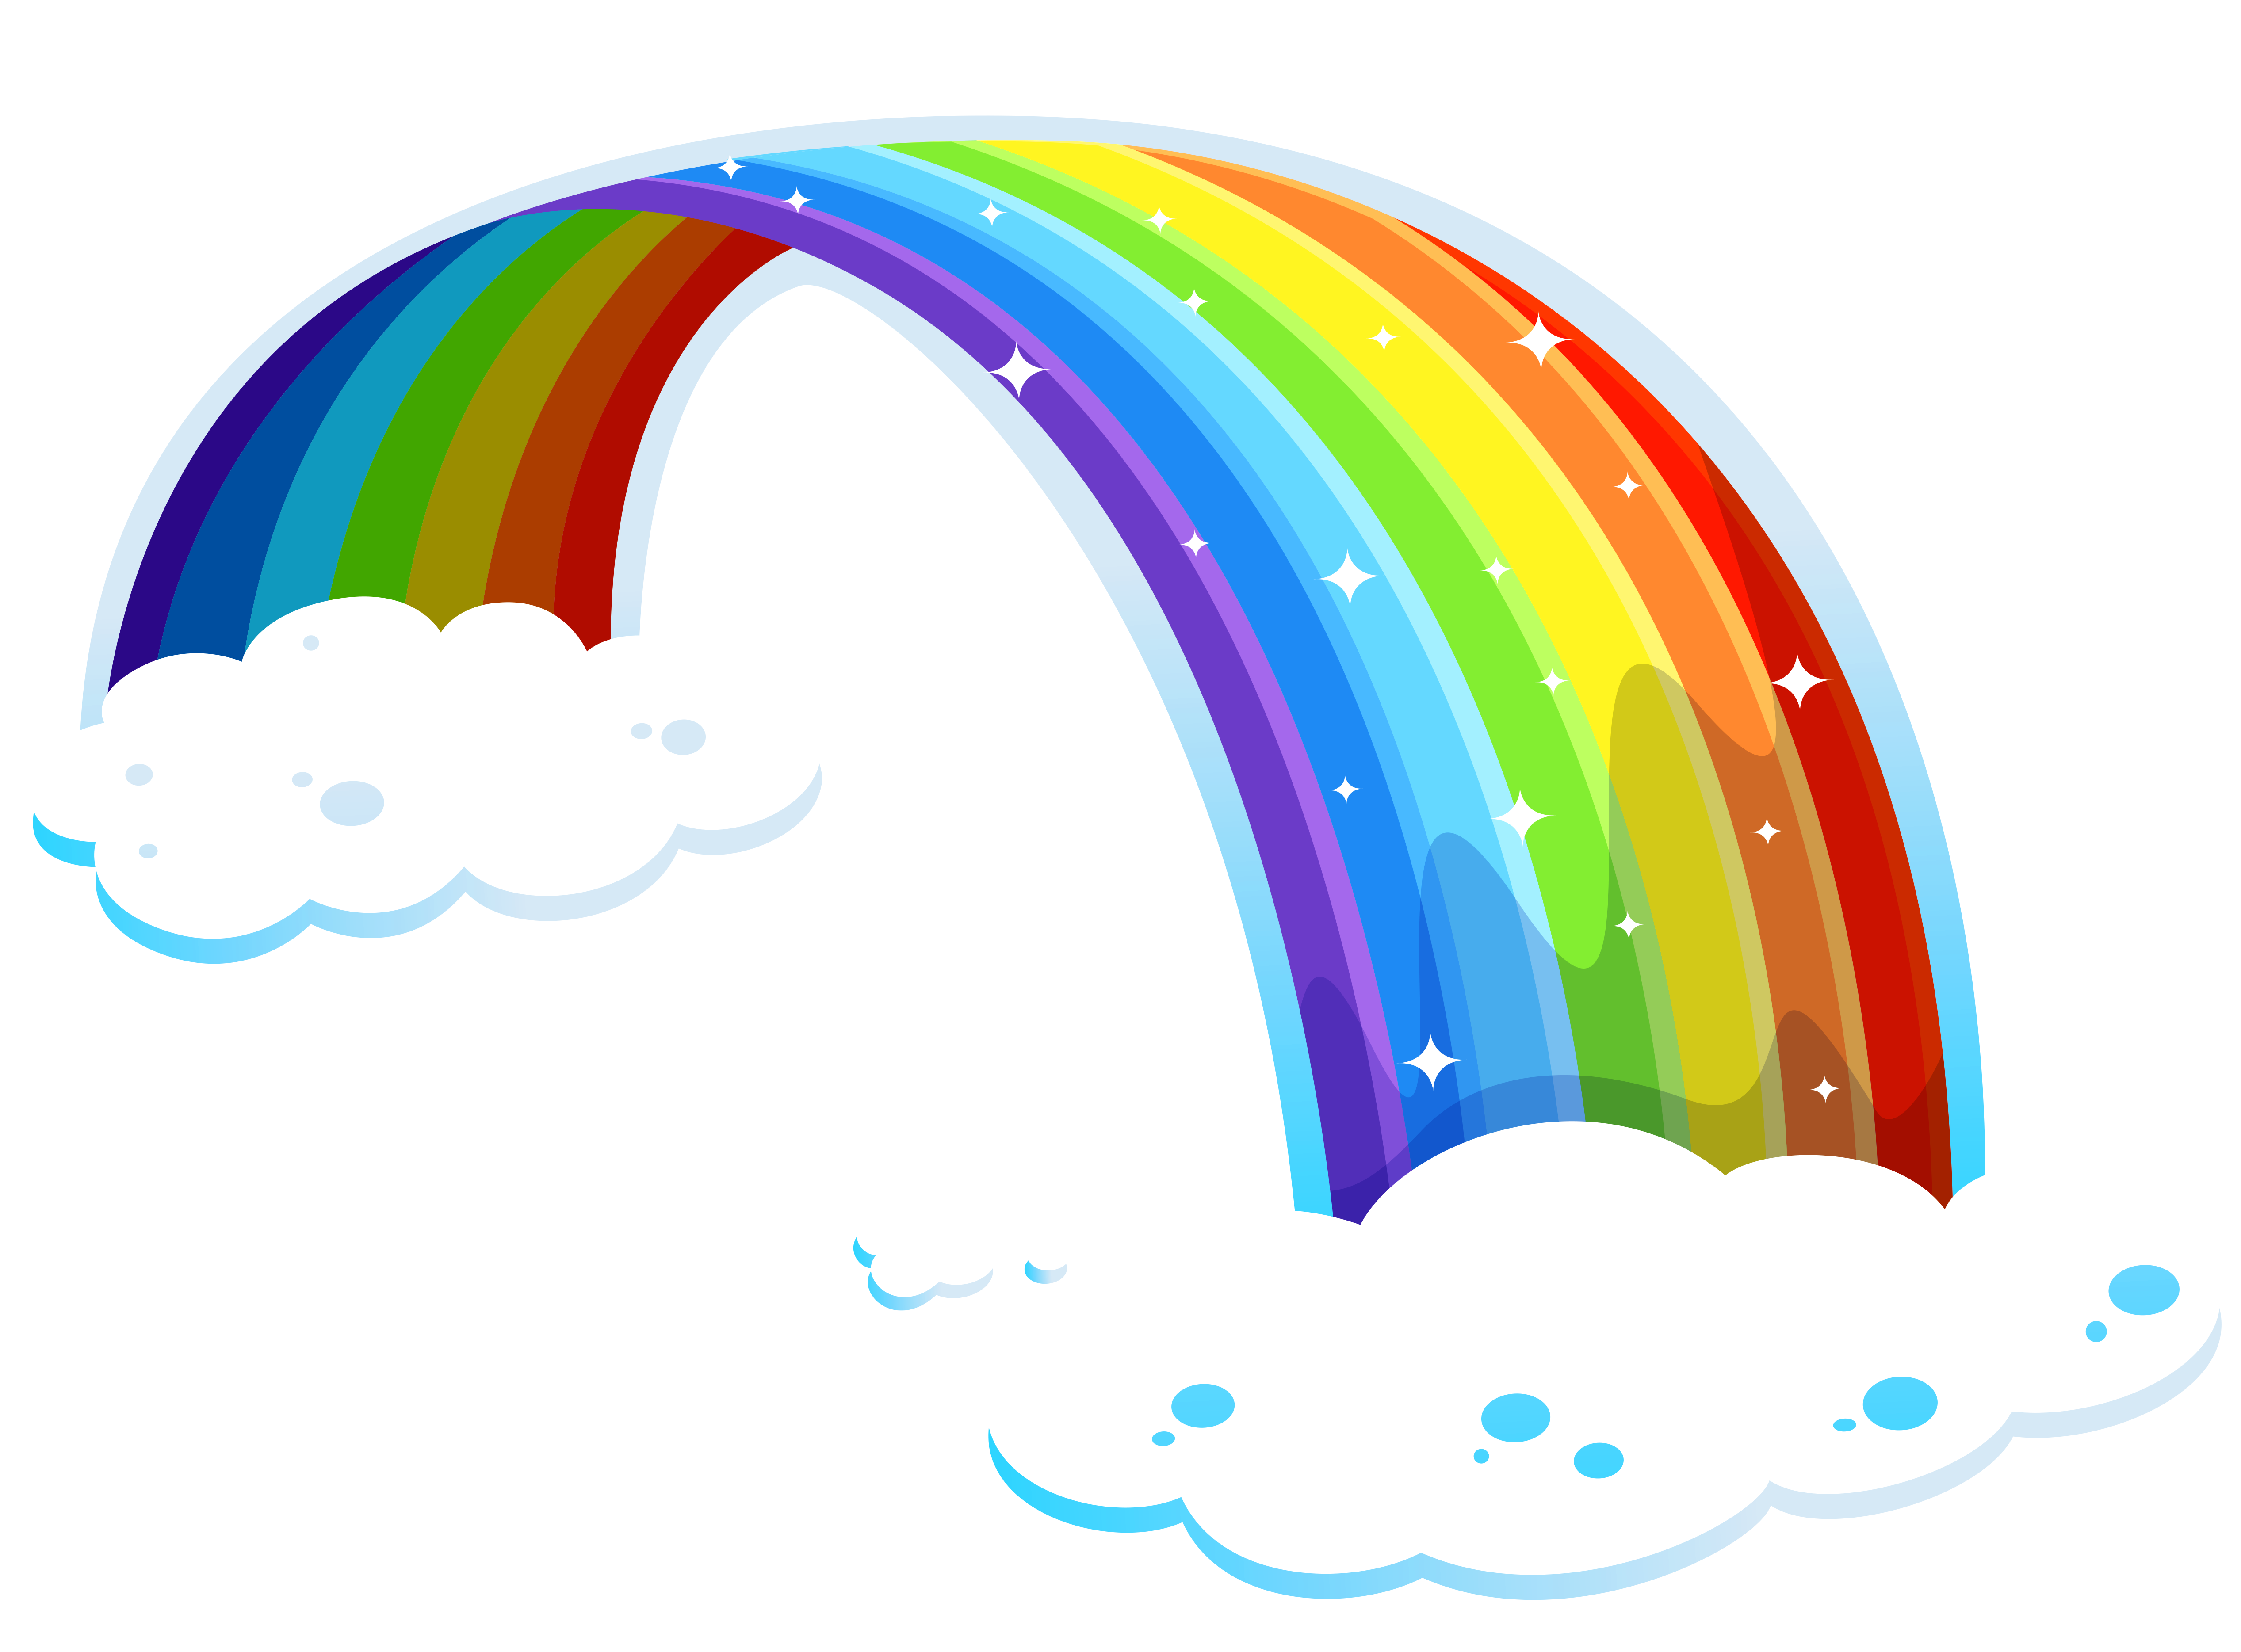 Rainbow Decoration Clouds Png image #6997